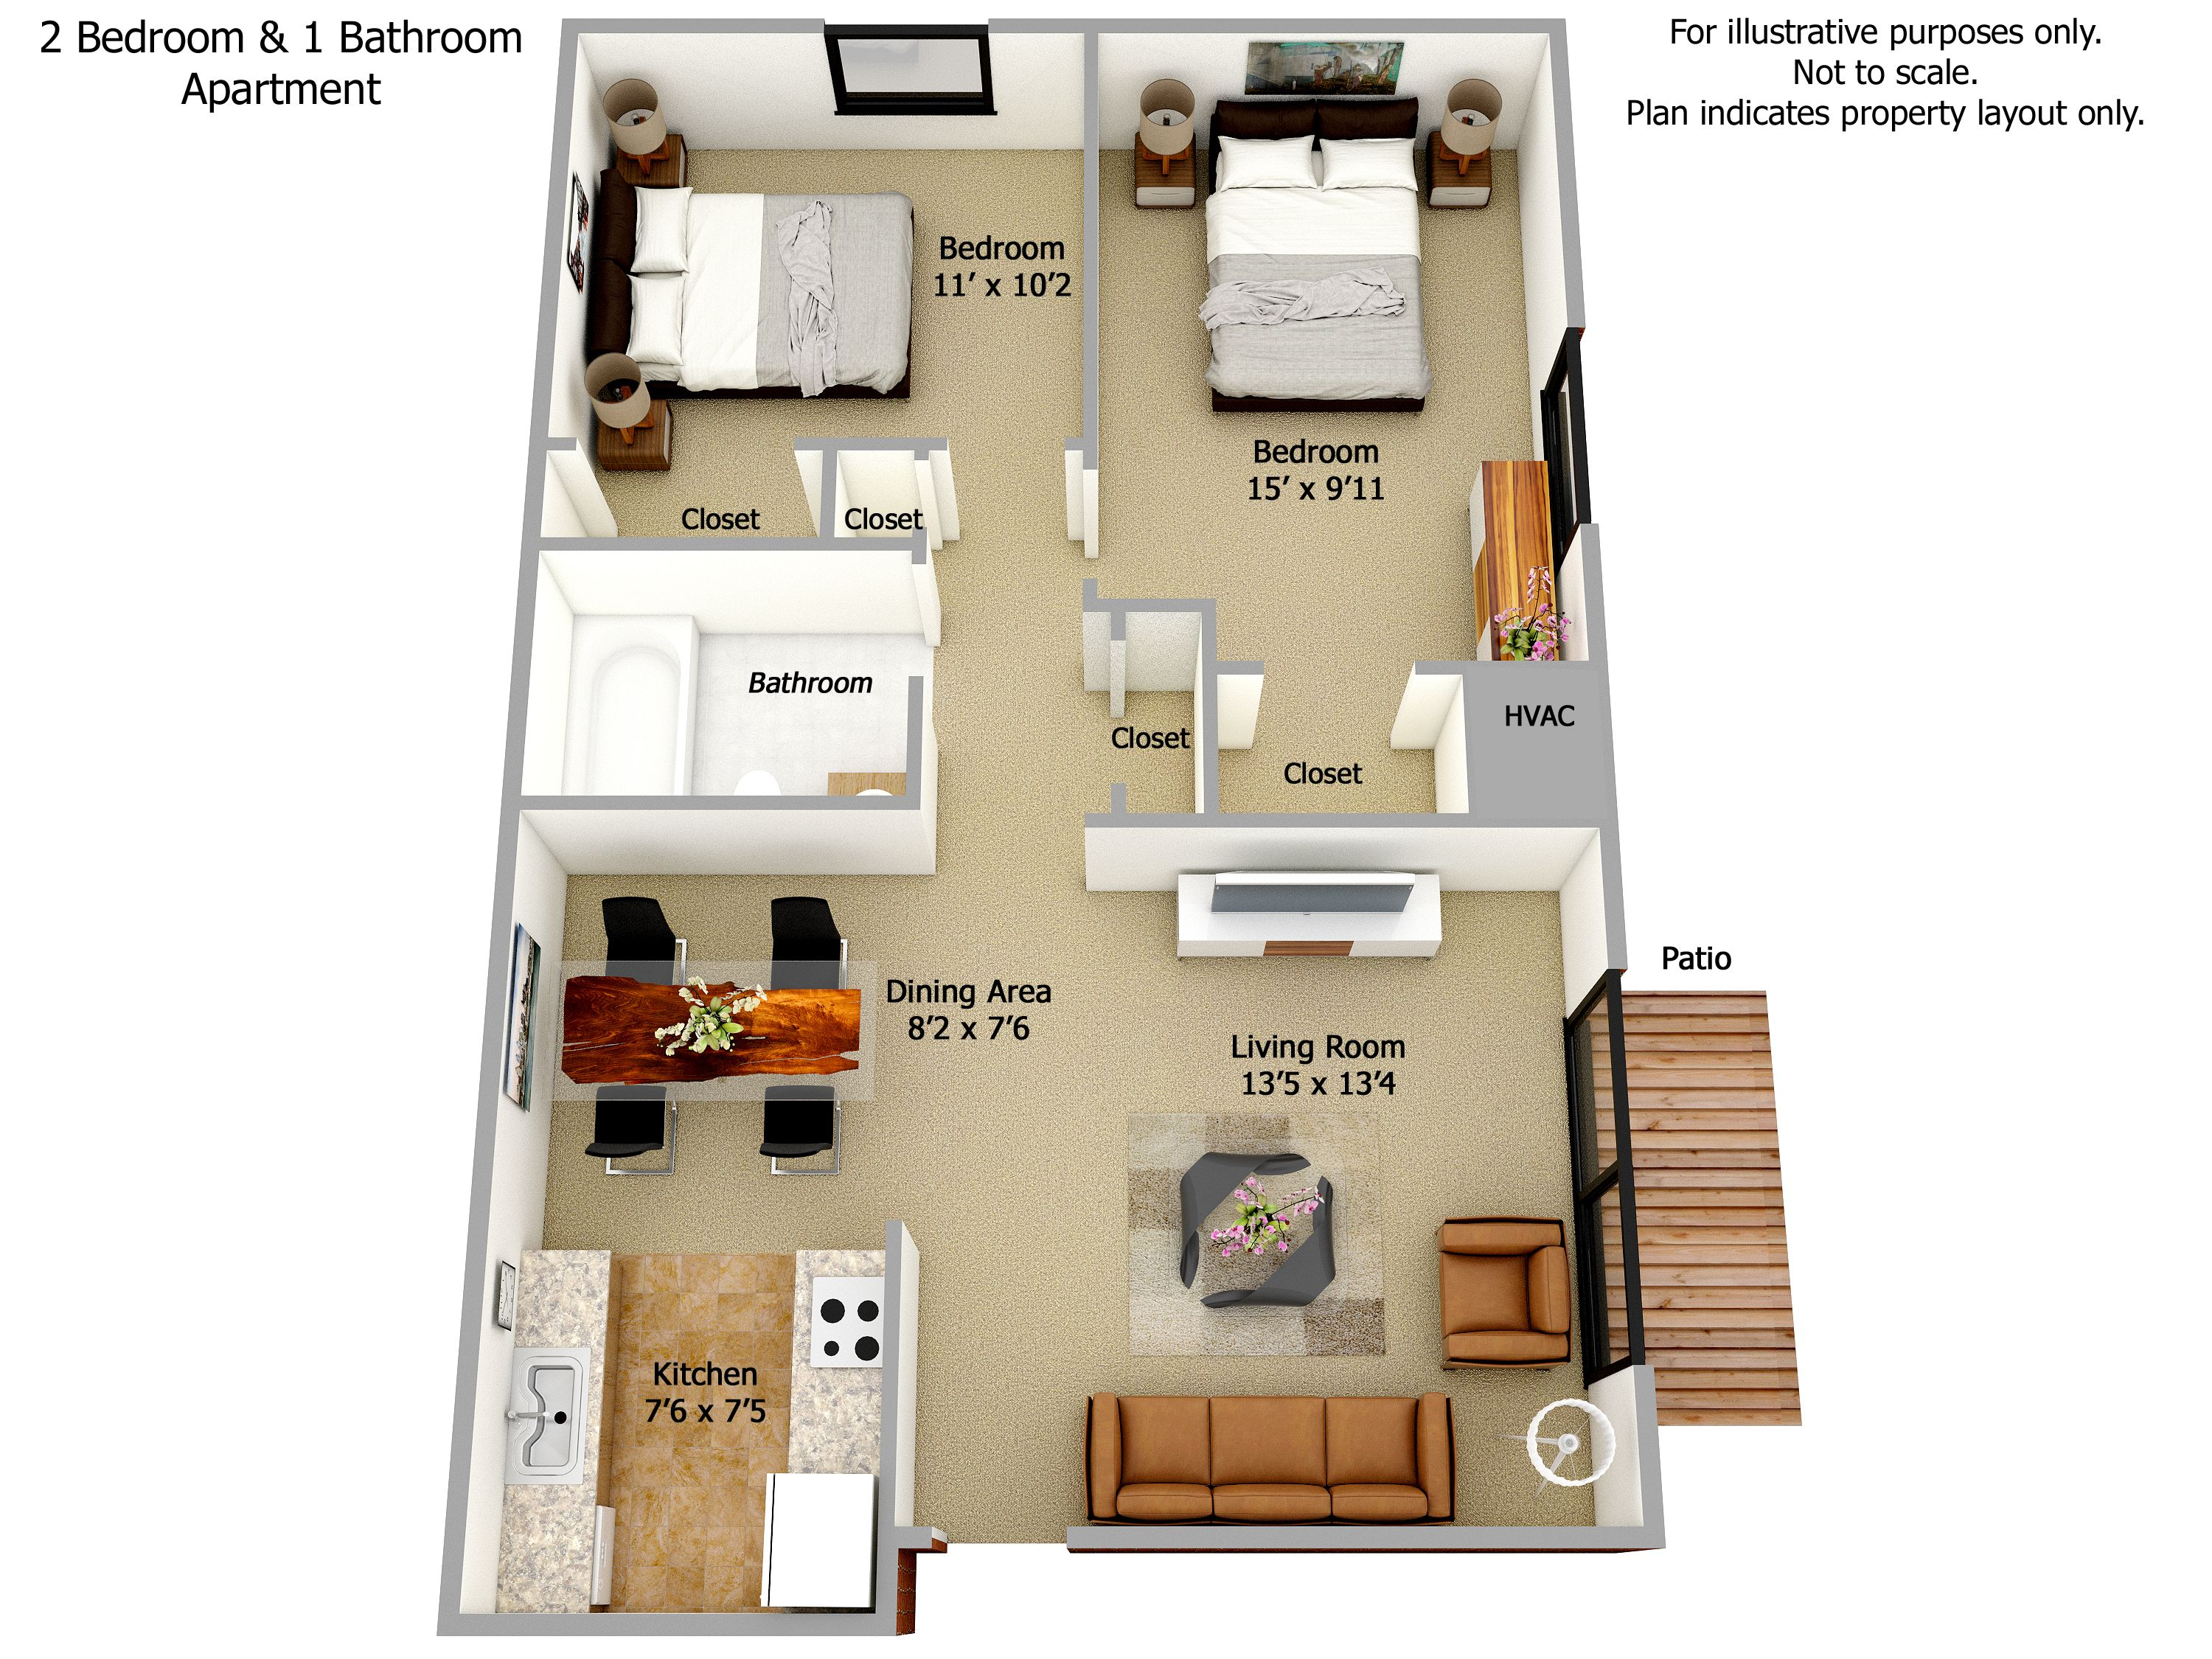 2br 1ba Patio 890 940 Please Check Out Our Website Or Call 414 761 3110 For Availability Floor Plans Apartment Layout Apartment Plans